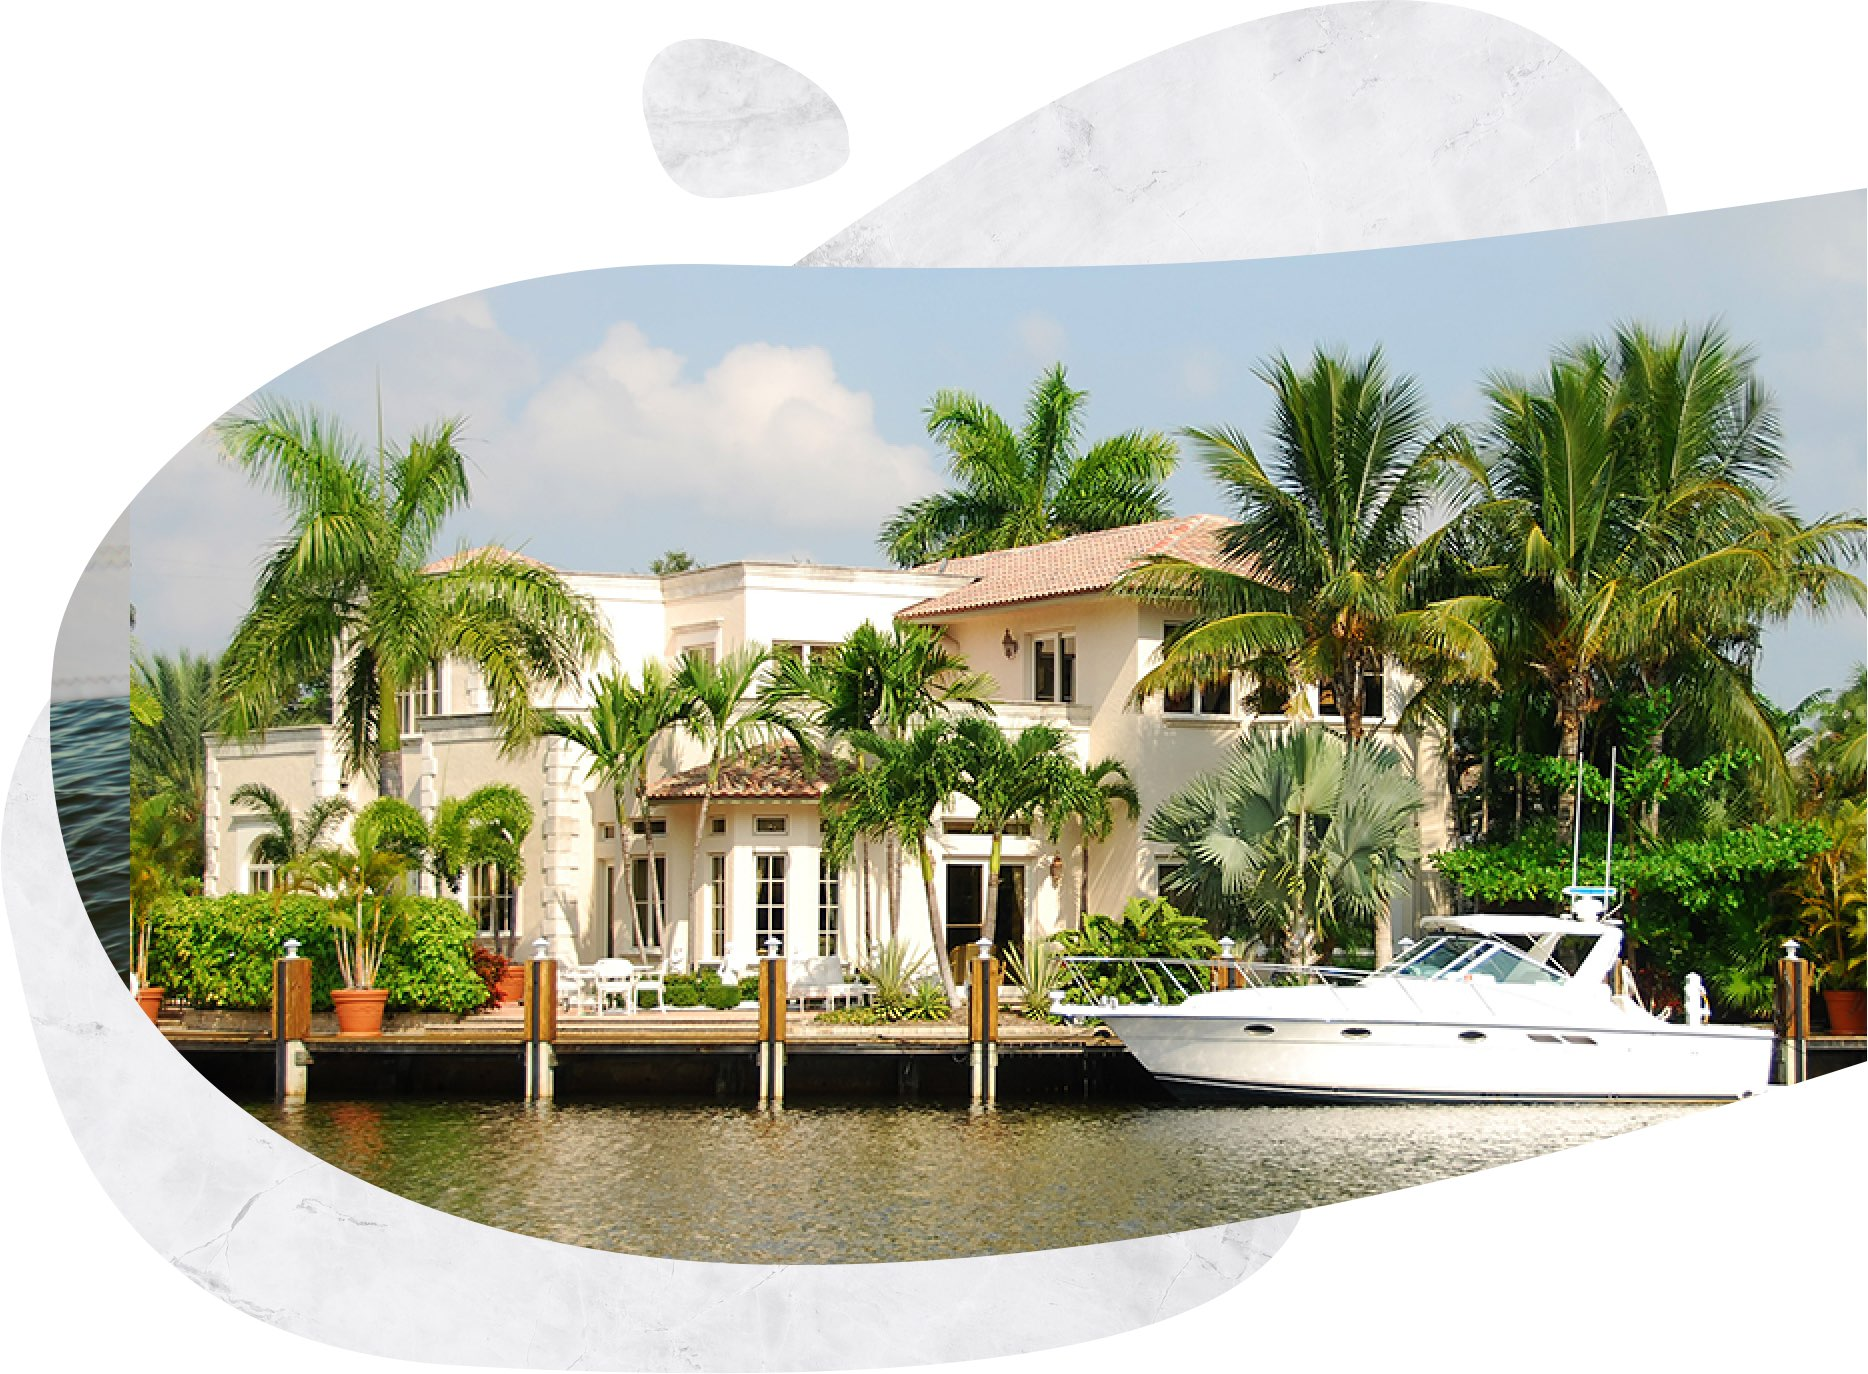 a waterfront home with a boat